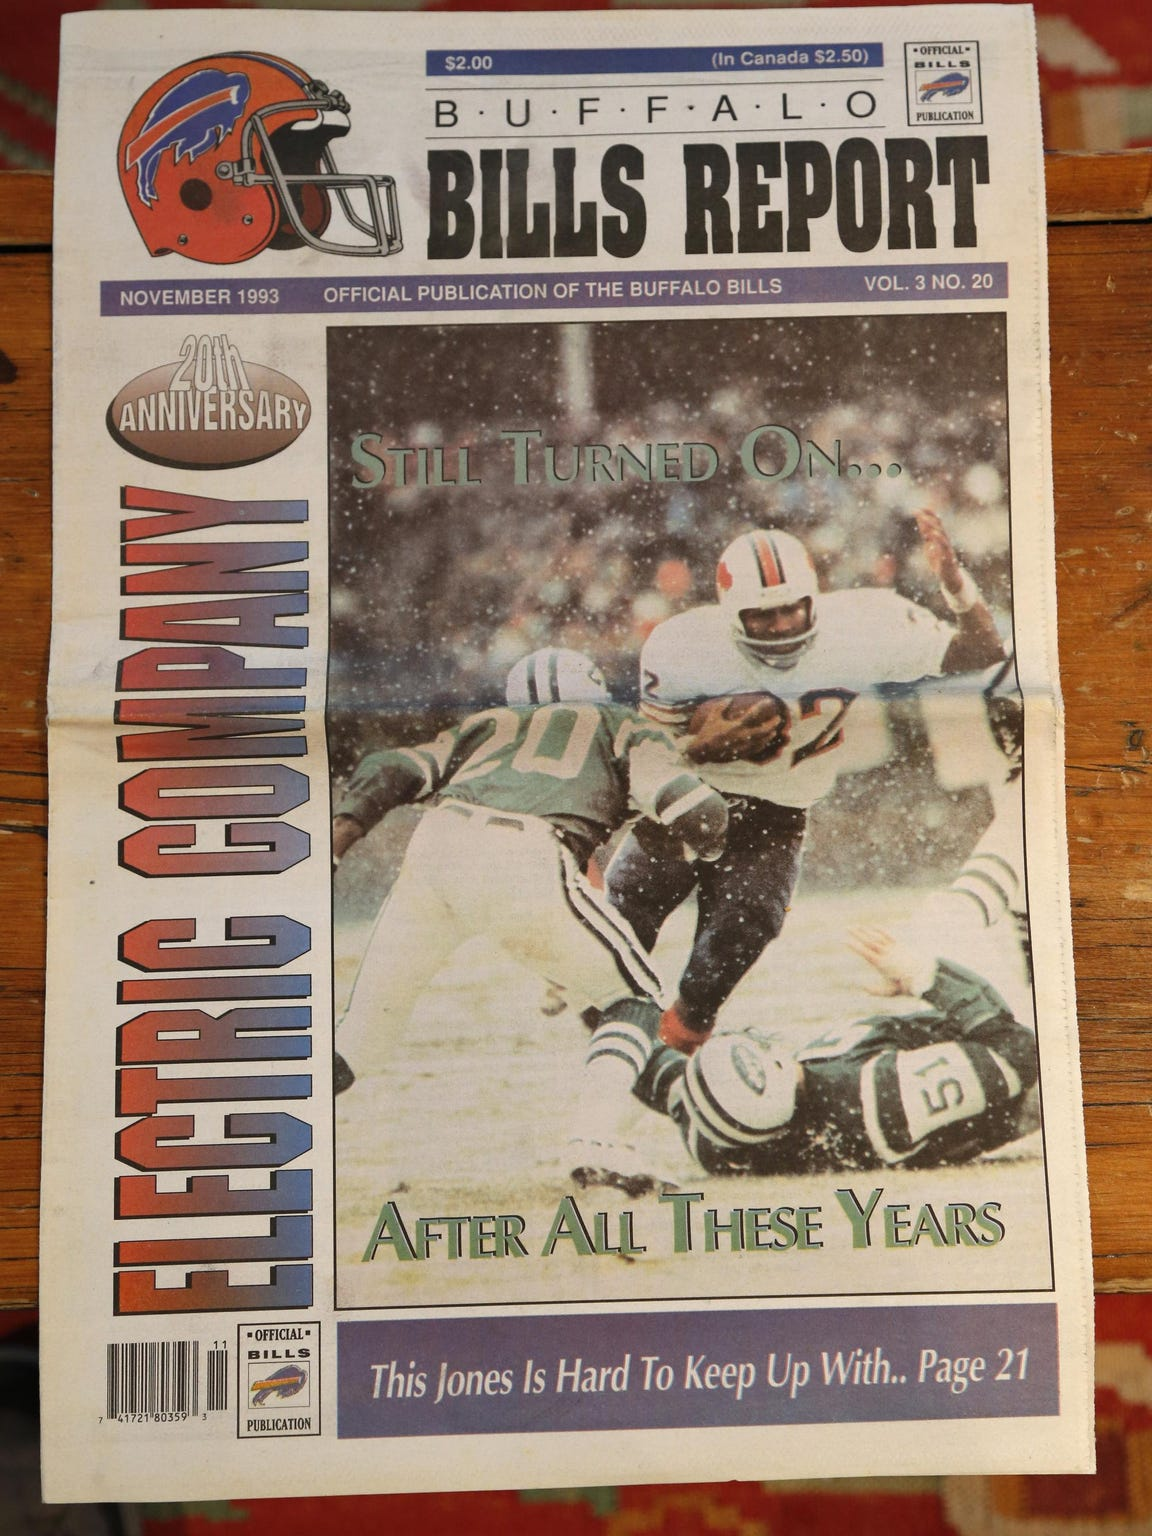 "The ""Buffalo Bills Report"" in December 1993 celebrates the 20th anniversary of O.J. Simpson's 2,000-yard season. It also included the infamous photo of Simpson wearing a pair of Bruno Magli shoes."